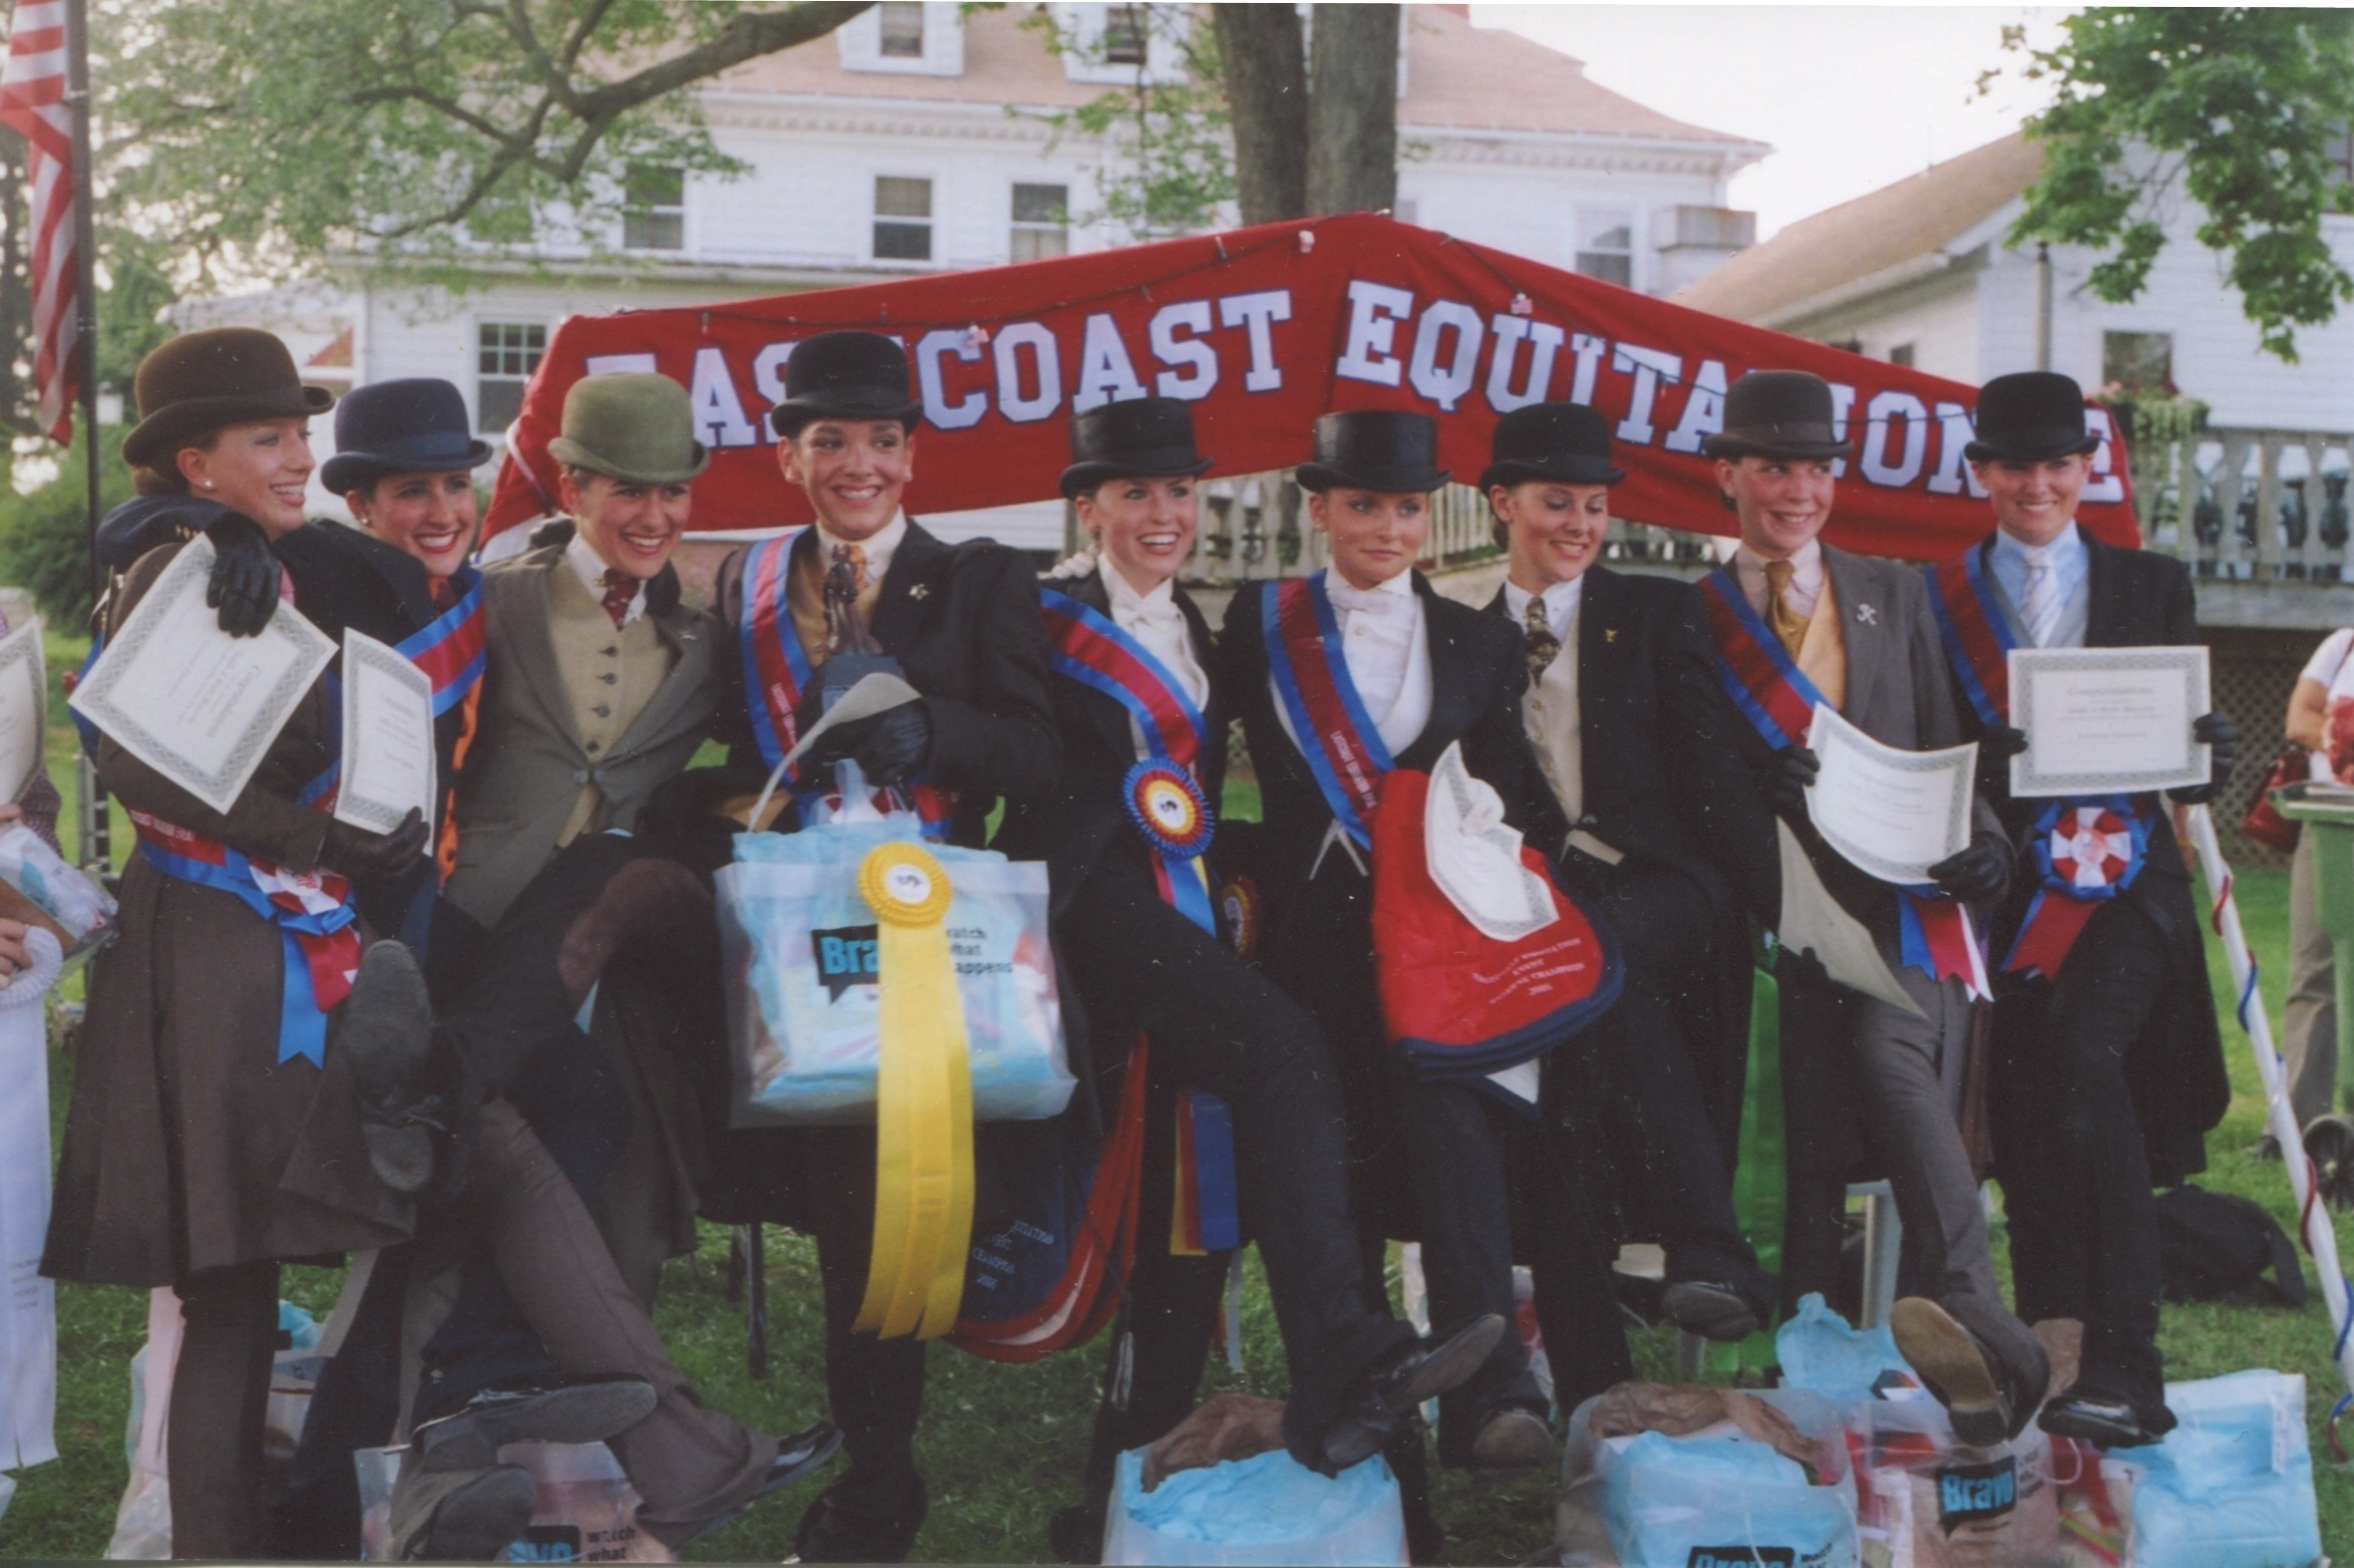 The Top Ten of the East Coast Equitation Event, which was held at Quentin in 2005.